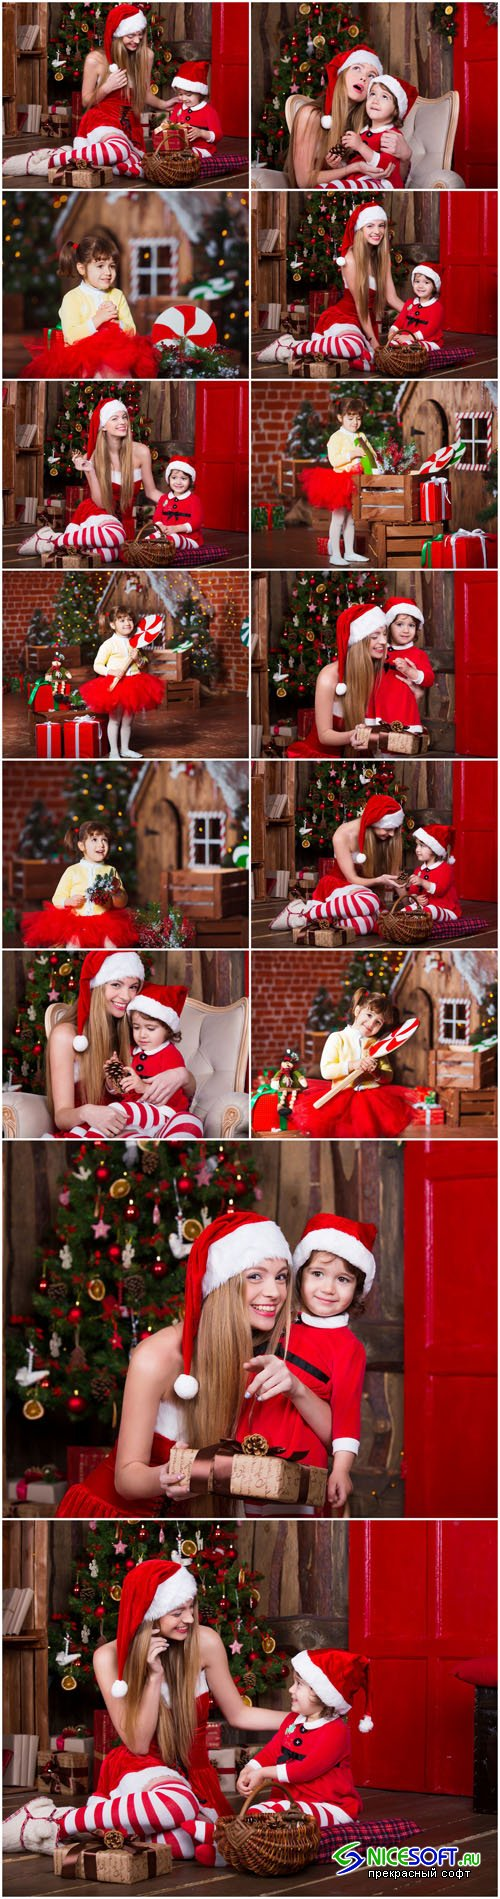 Cute girls sitting with presents near Christmas tree in Santa costumes - 14xUHQ JPEG